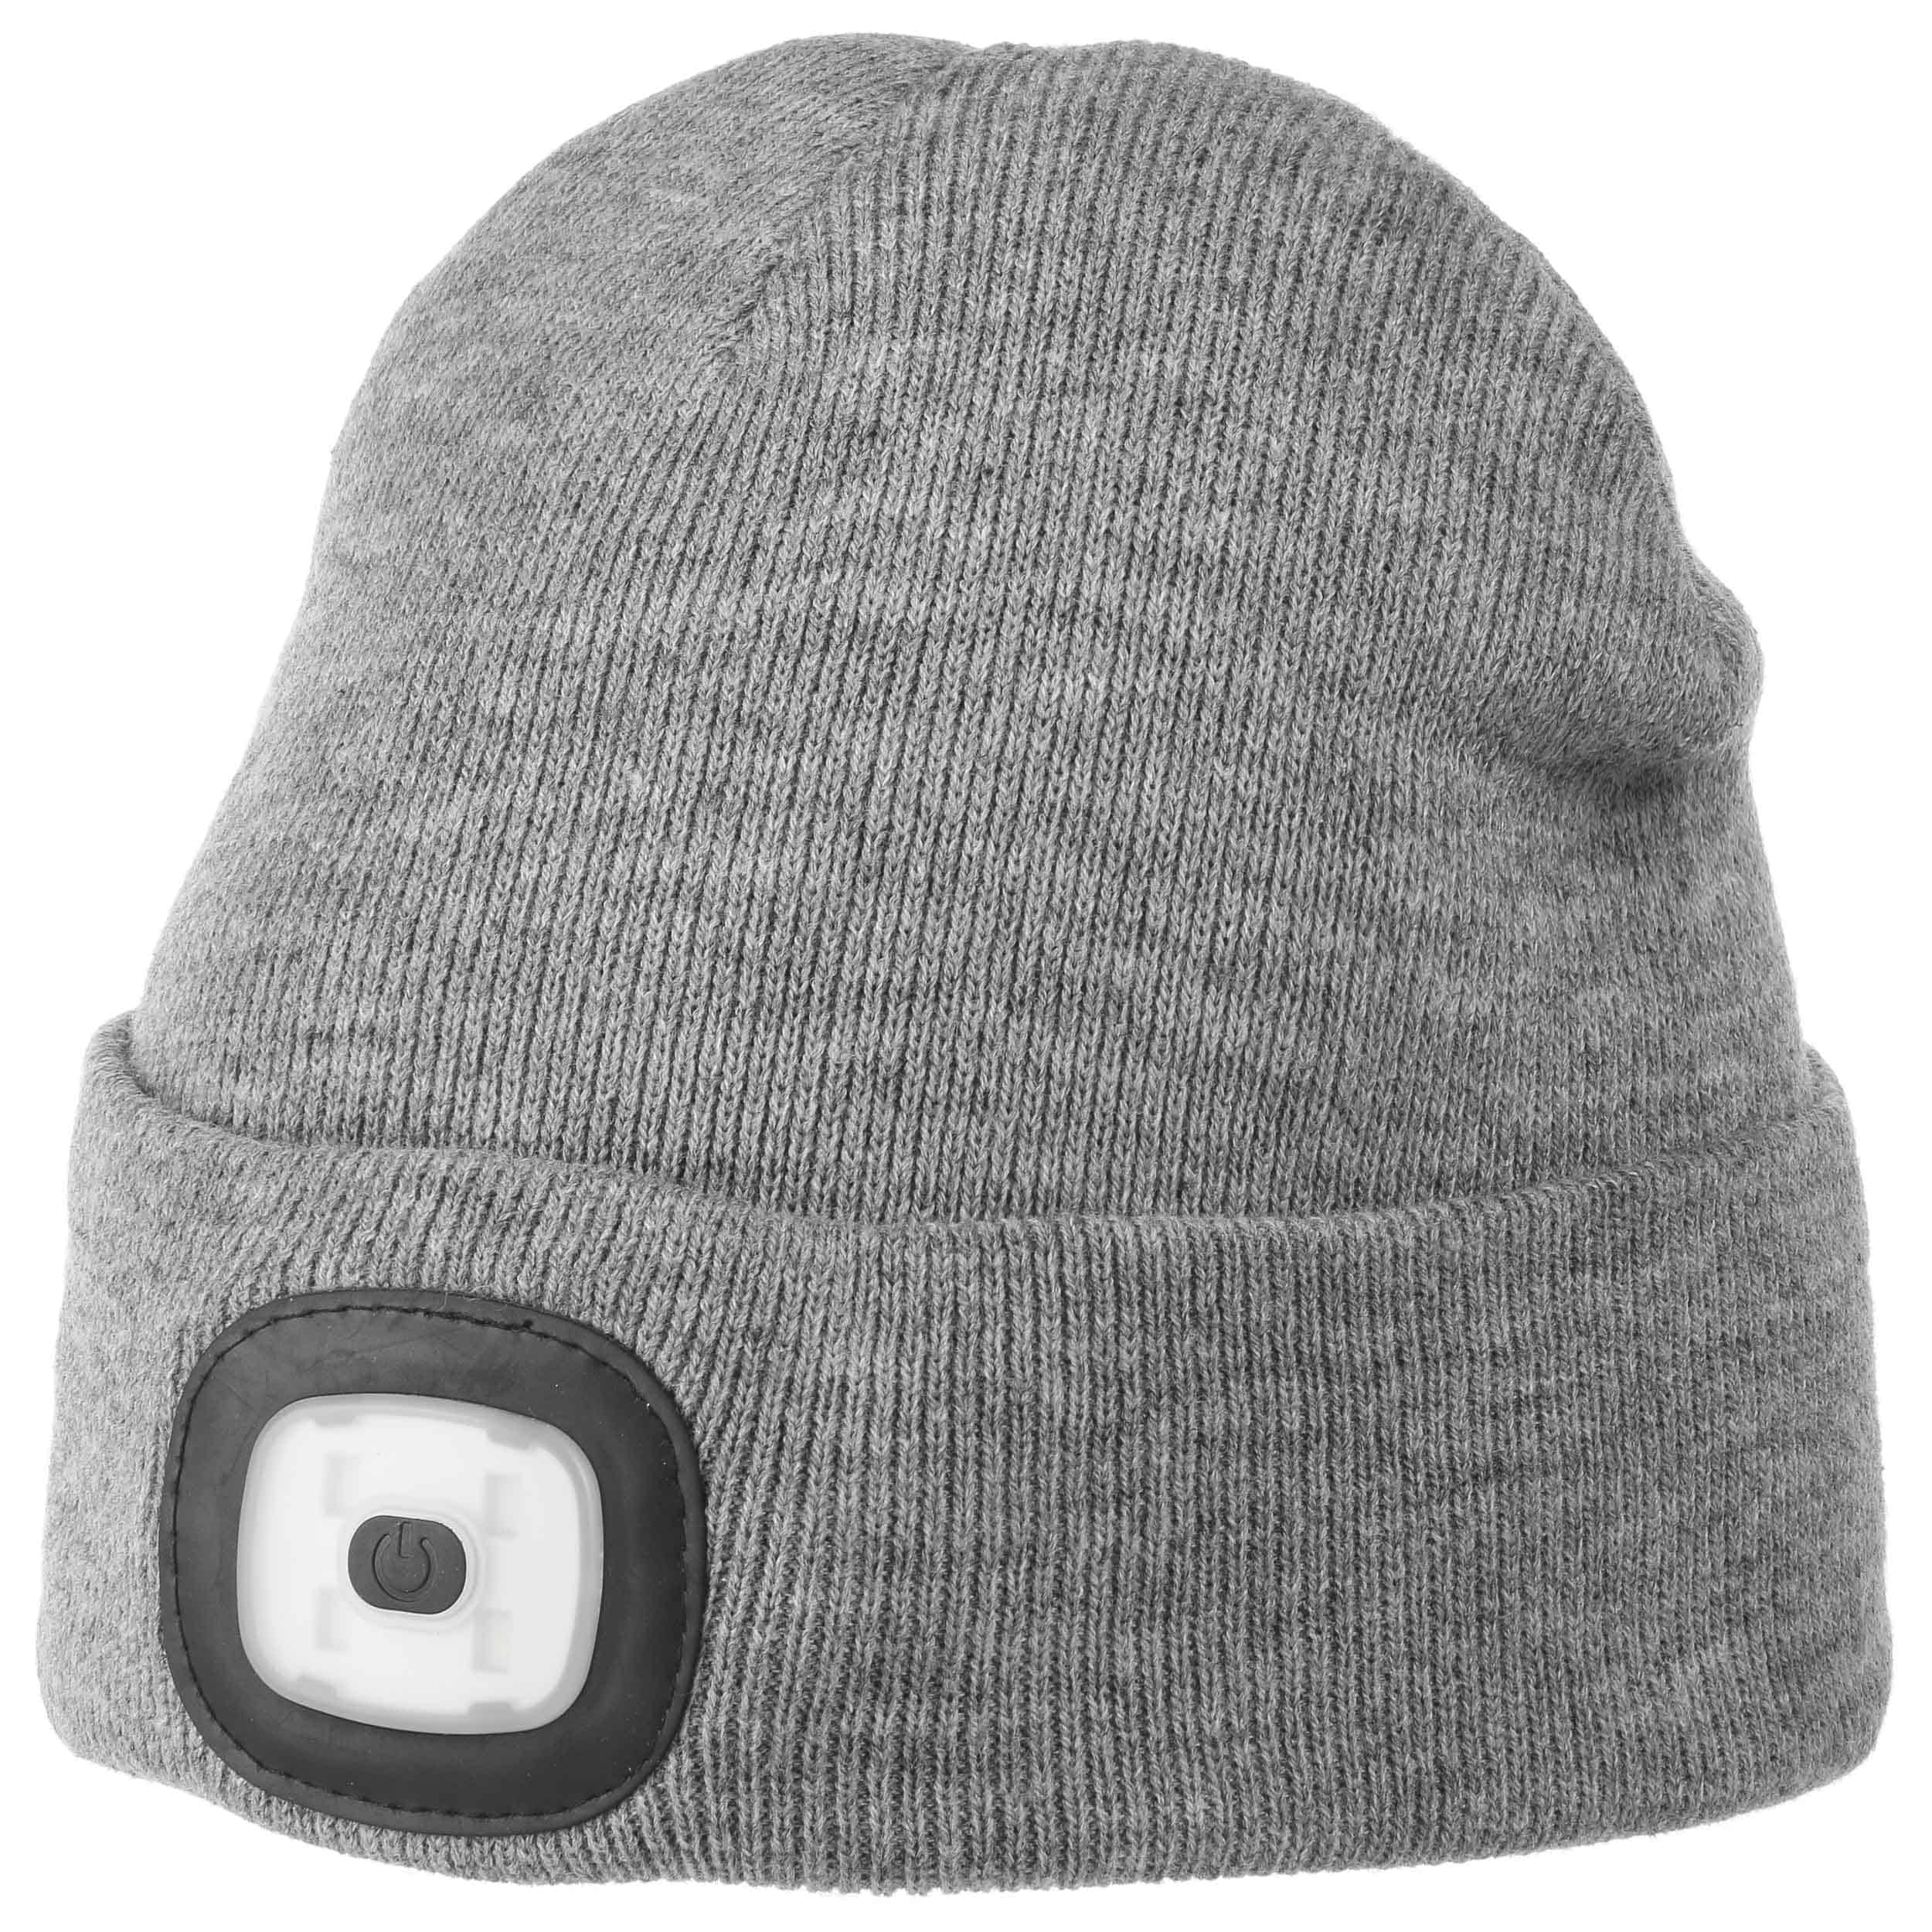 ... Chilllight Cuffed Beanie with LED by Chillouts - grey 4 ... 8f1f68b36cd9